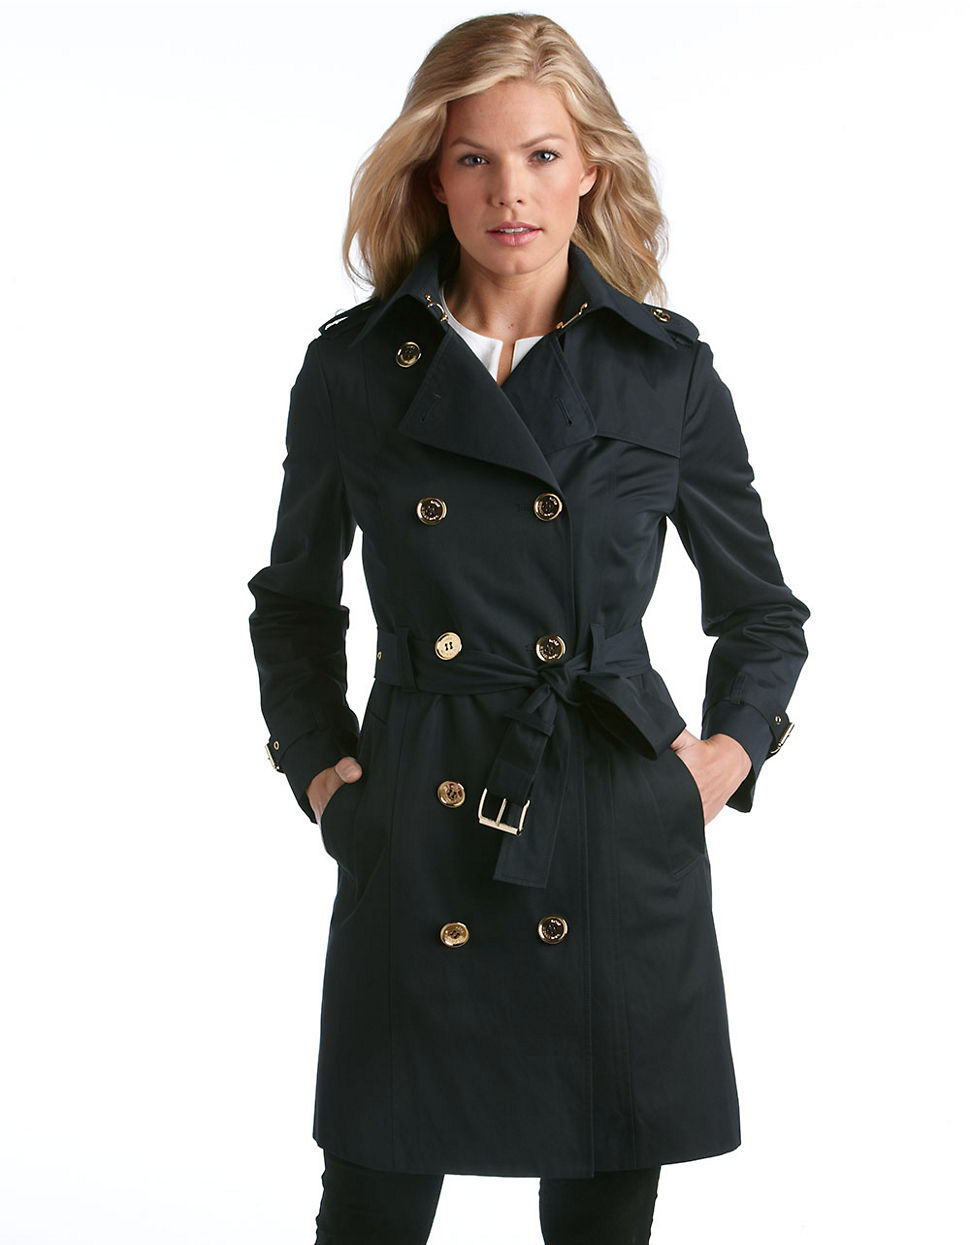 Michael michael kors Double Breasted Trench Coat in Black | Lyst